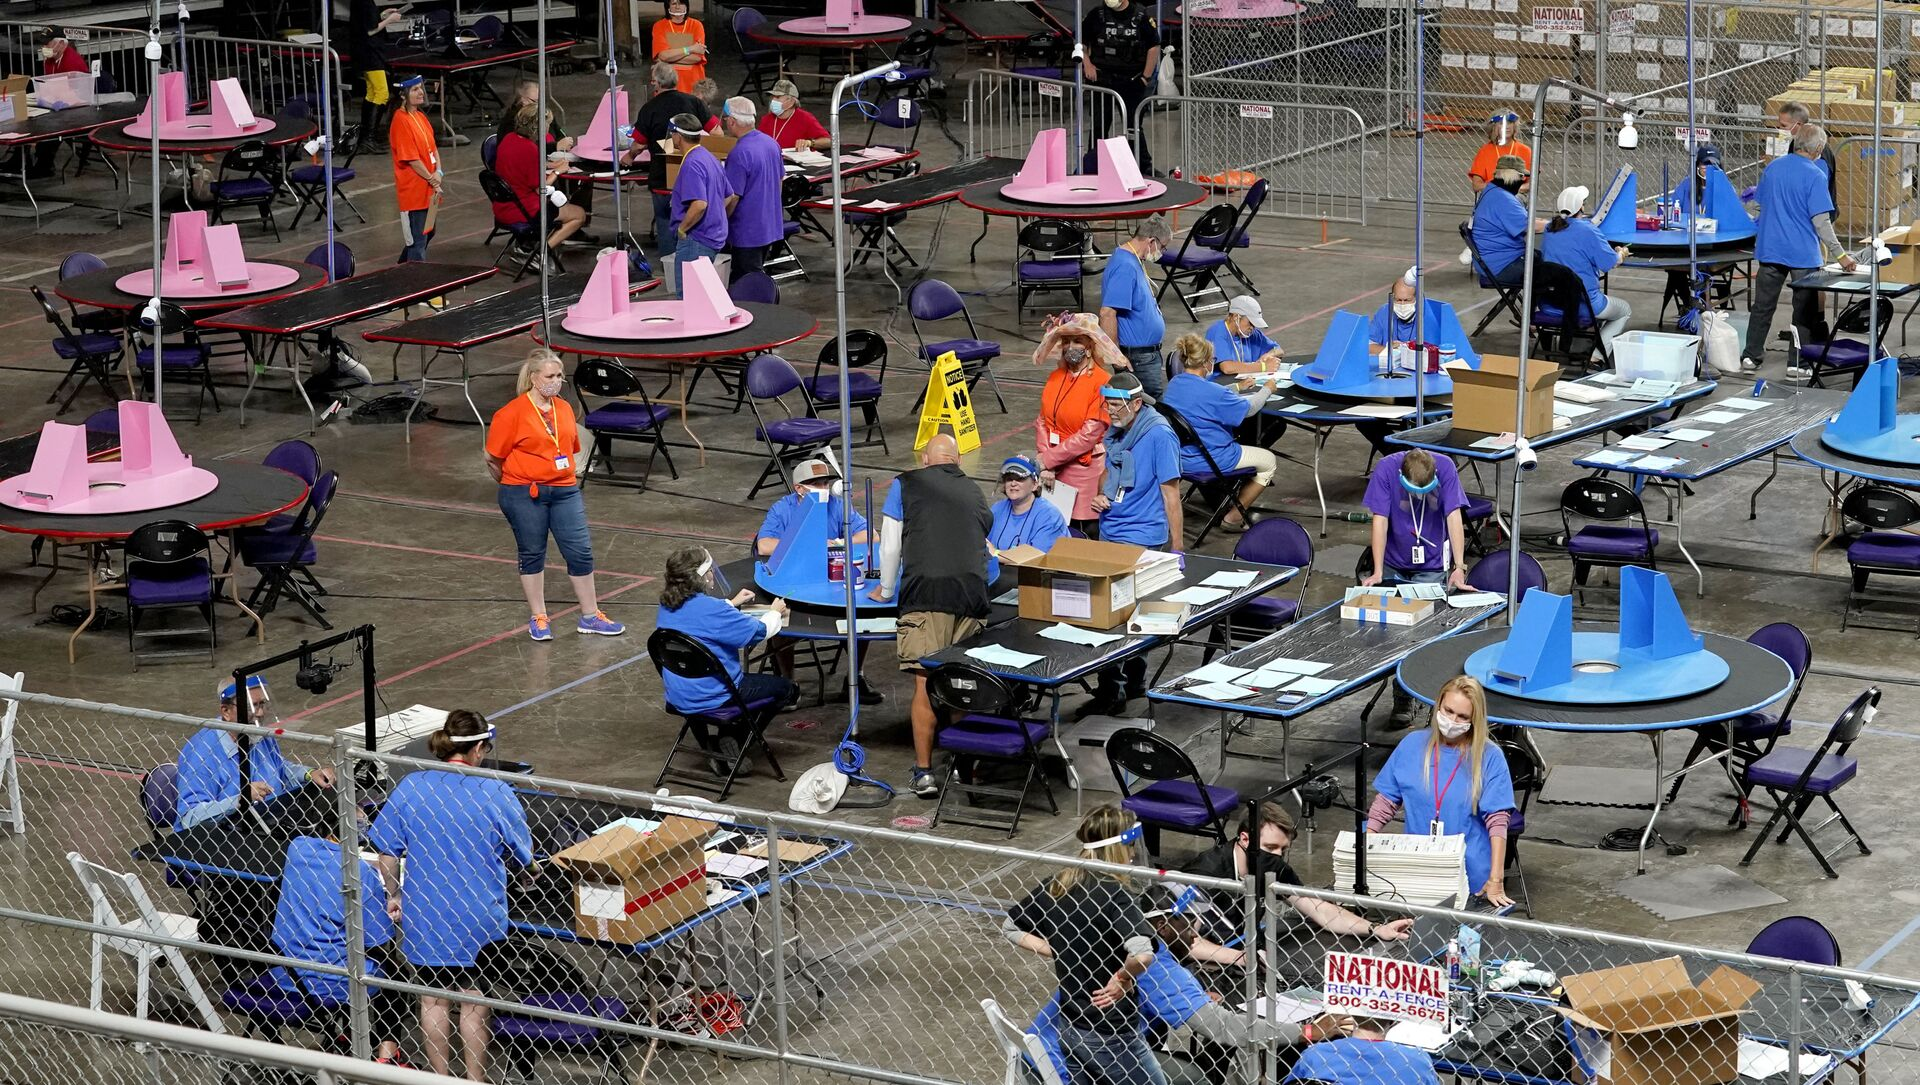 In this 6 May 2021 file photo, Maricopa County ballots cast in the 2020 general election are examined and recounted by contractors working for Florida-based company, Cyber Ninjas at the Veterans Memorial Coliseum in Phoenix. (AP Photo/Matt York, Pool, File) - Sputnik International, 1920, 28.07.2021